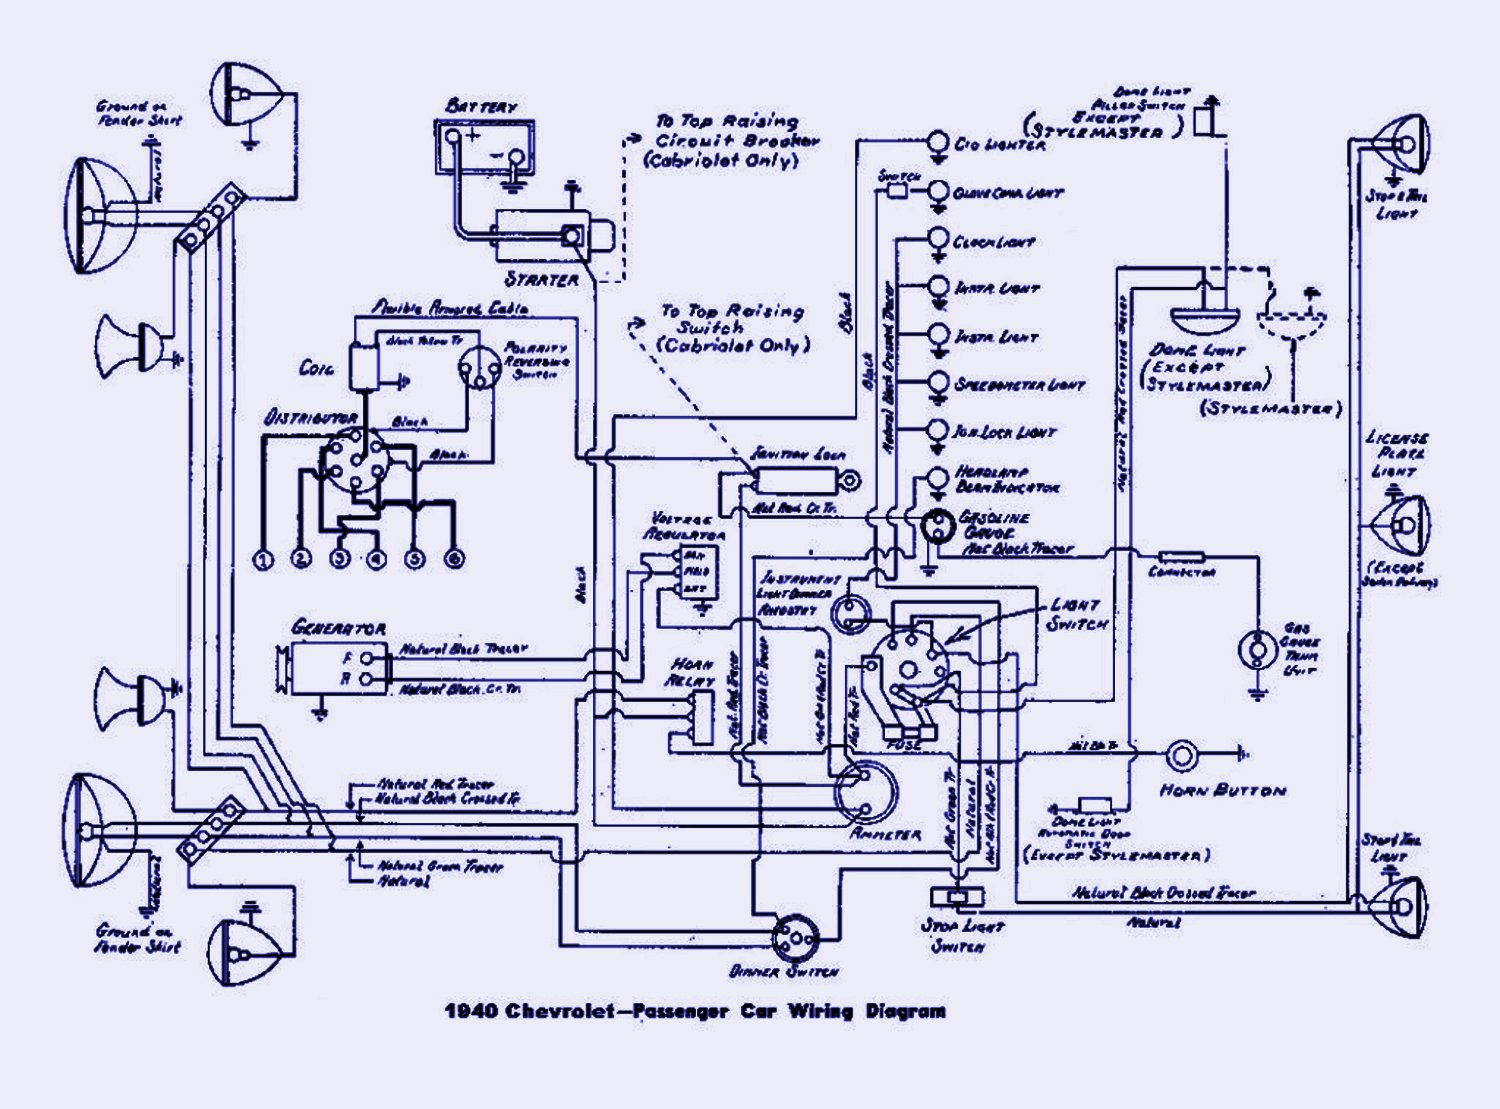 [ZHKZ_3066]  DIAGRAM] Automotive Electrical Wiring Diagrams FULL Version HD Quality Wiring  Diagrams - VENNDIAGRAMONLINE.NUITDEBOUTAIX.FR | About Automotive Electrical Wiring Schematics |  | venndiagramonline.nuitdeboutaix.fr